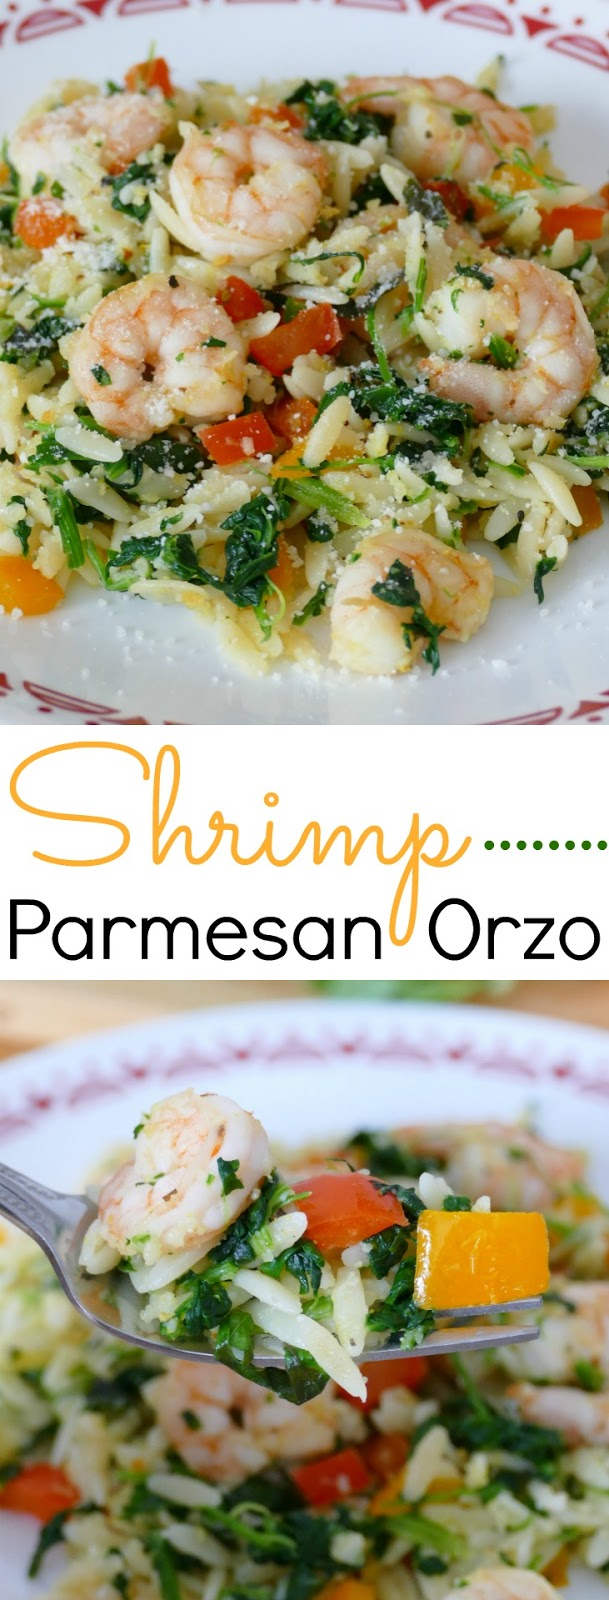 This simple and tasty lunch or dinner idea is packed full of delicious vegetables, fresh basil, garlic and lemon pepper along with the shrimp, orzo, parmesan cheese, bell pepper and spinach! It's ready in less than 30 minutes and you can omit the shrimp to make it completely meatless!